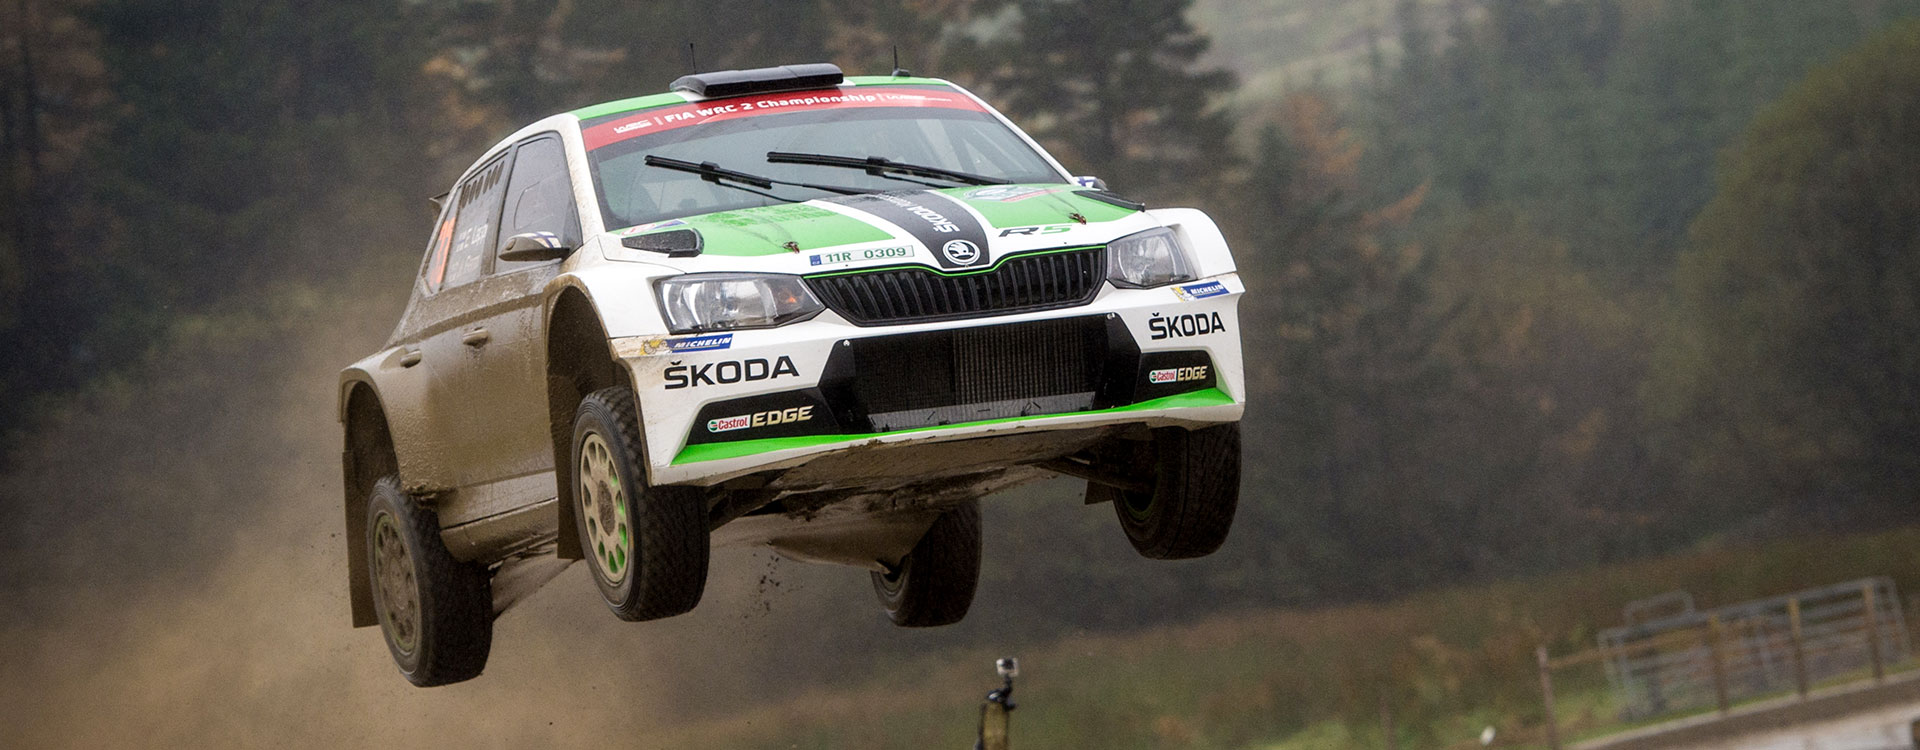 WRC Great Britain: ŠKODA works driver Lappi takes the overall lead